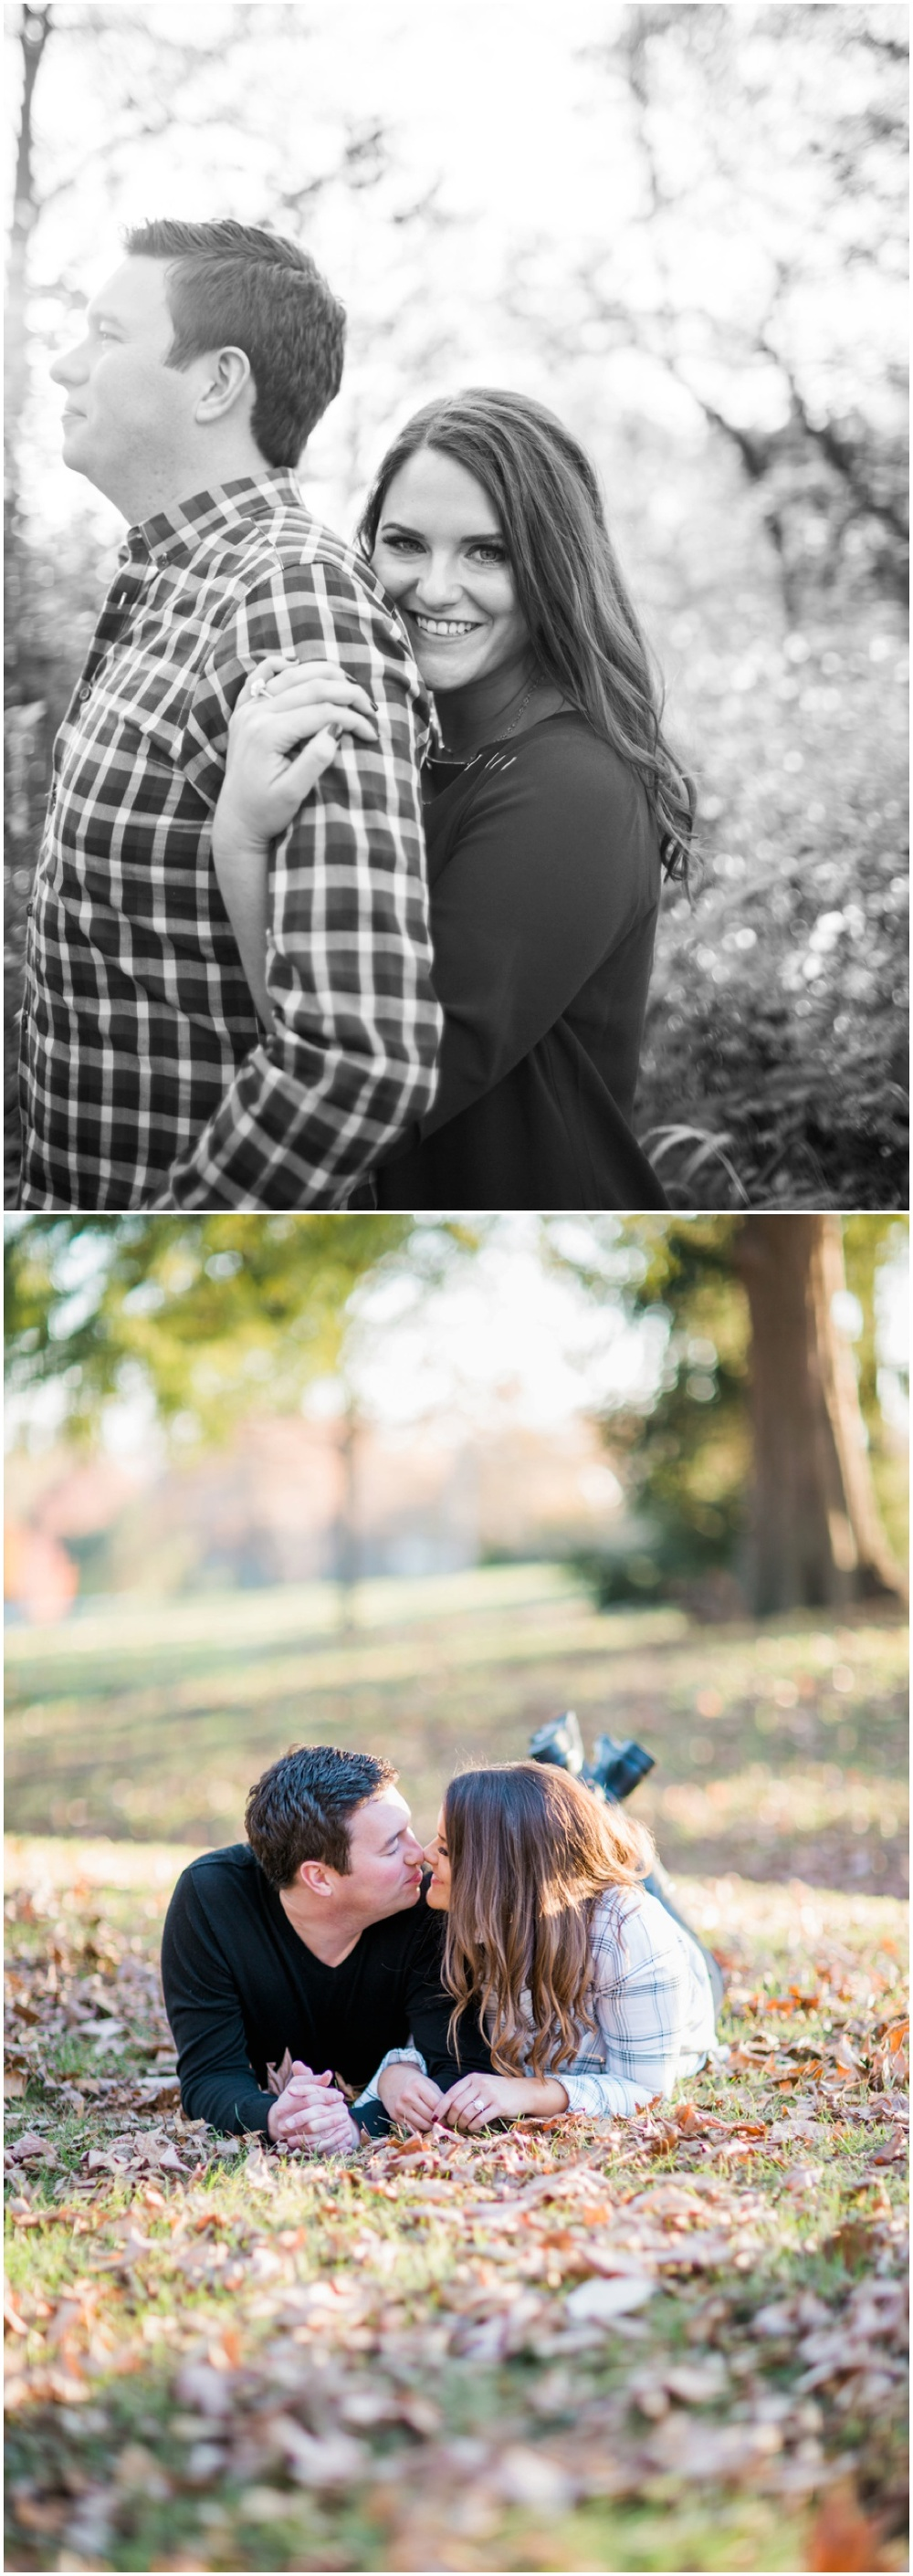 photography-engagement5.jpg